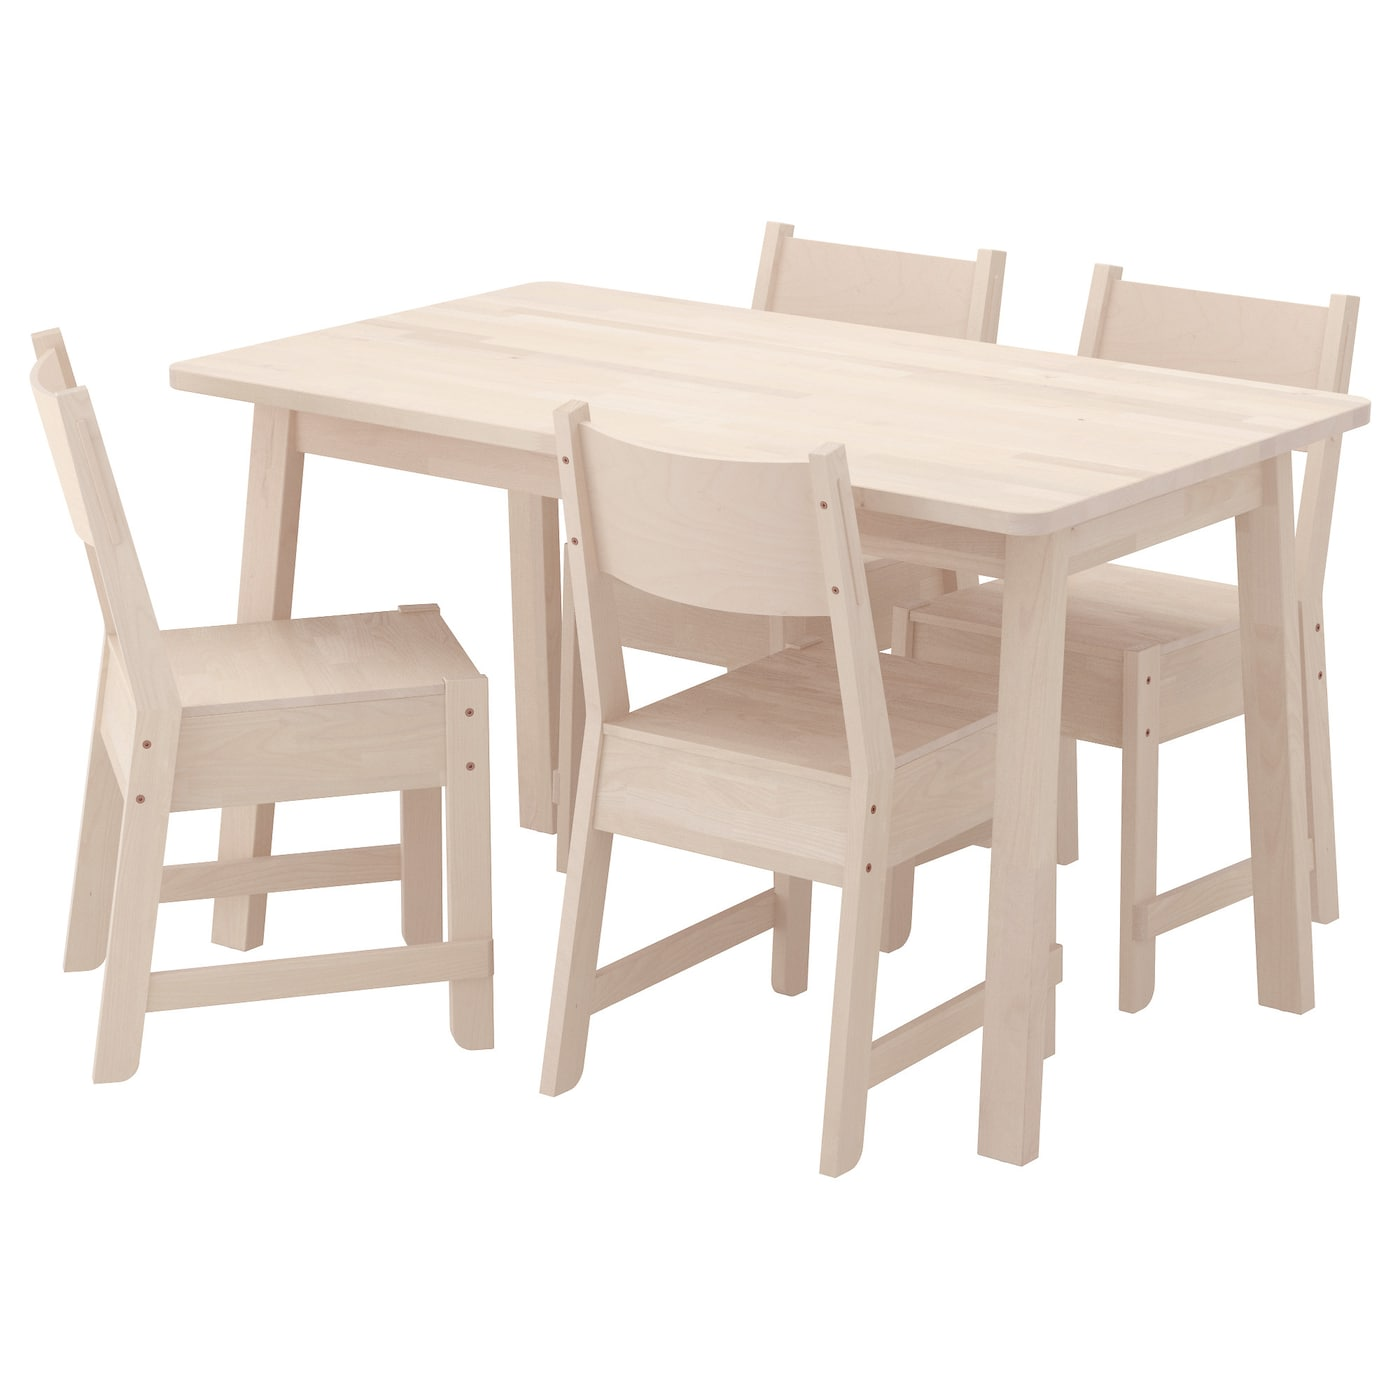 IKEA NORRÅKER/NORRÅKER table and 4 chairs